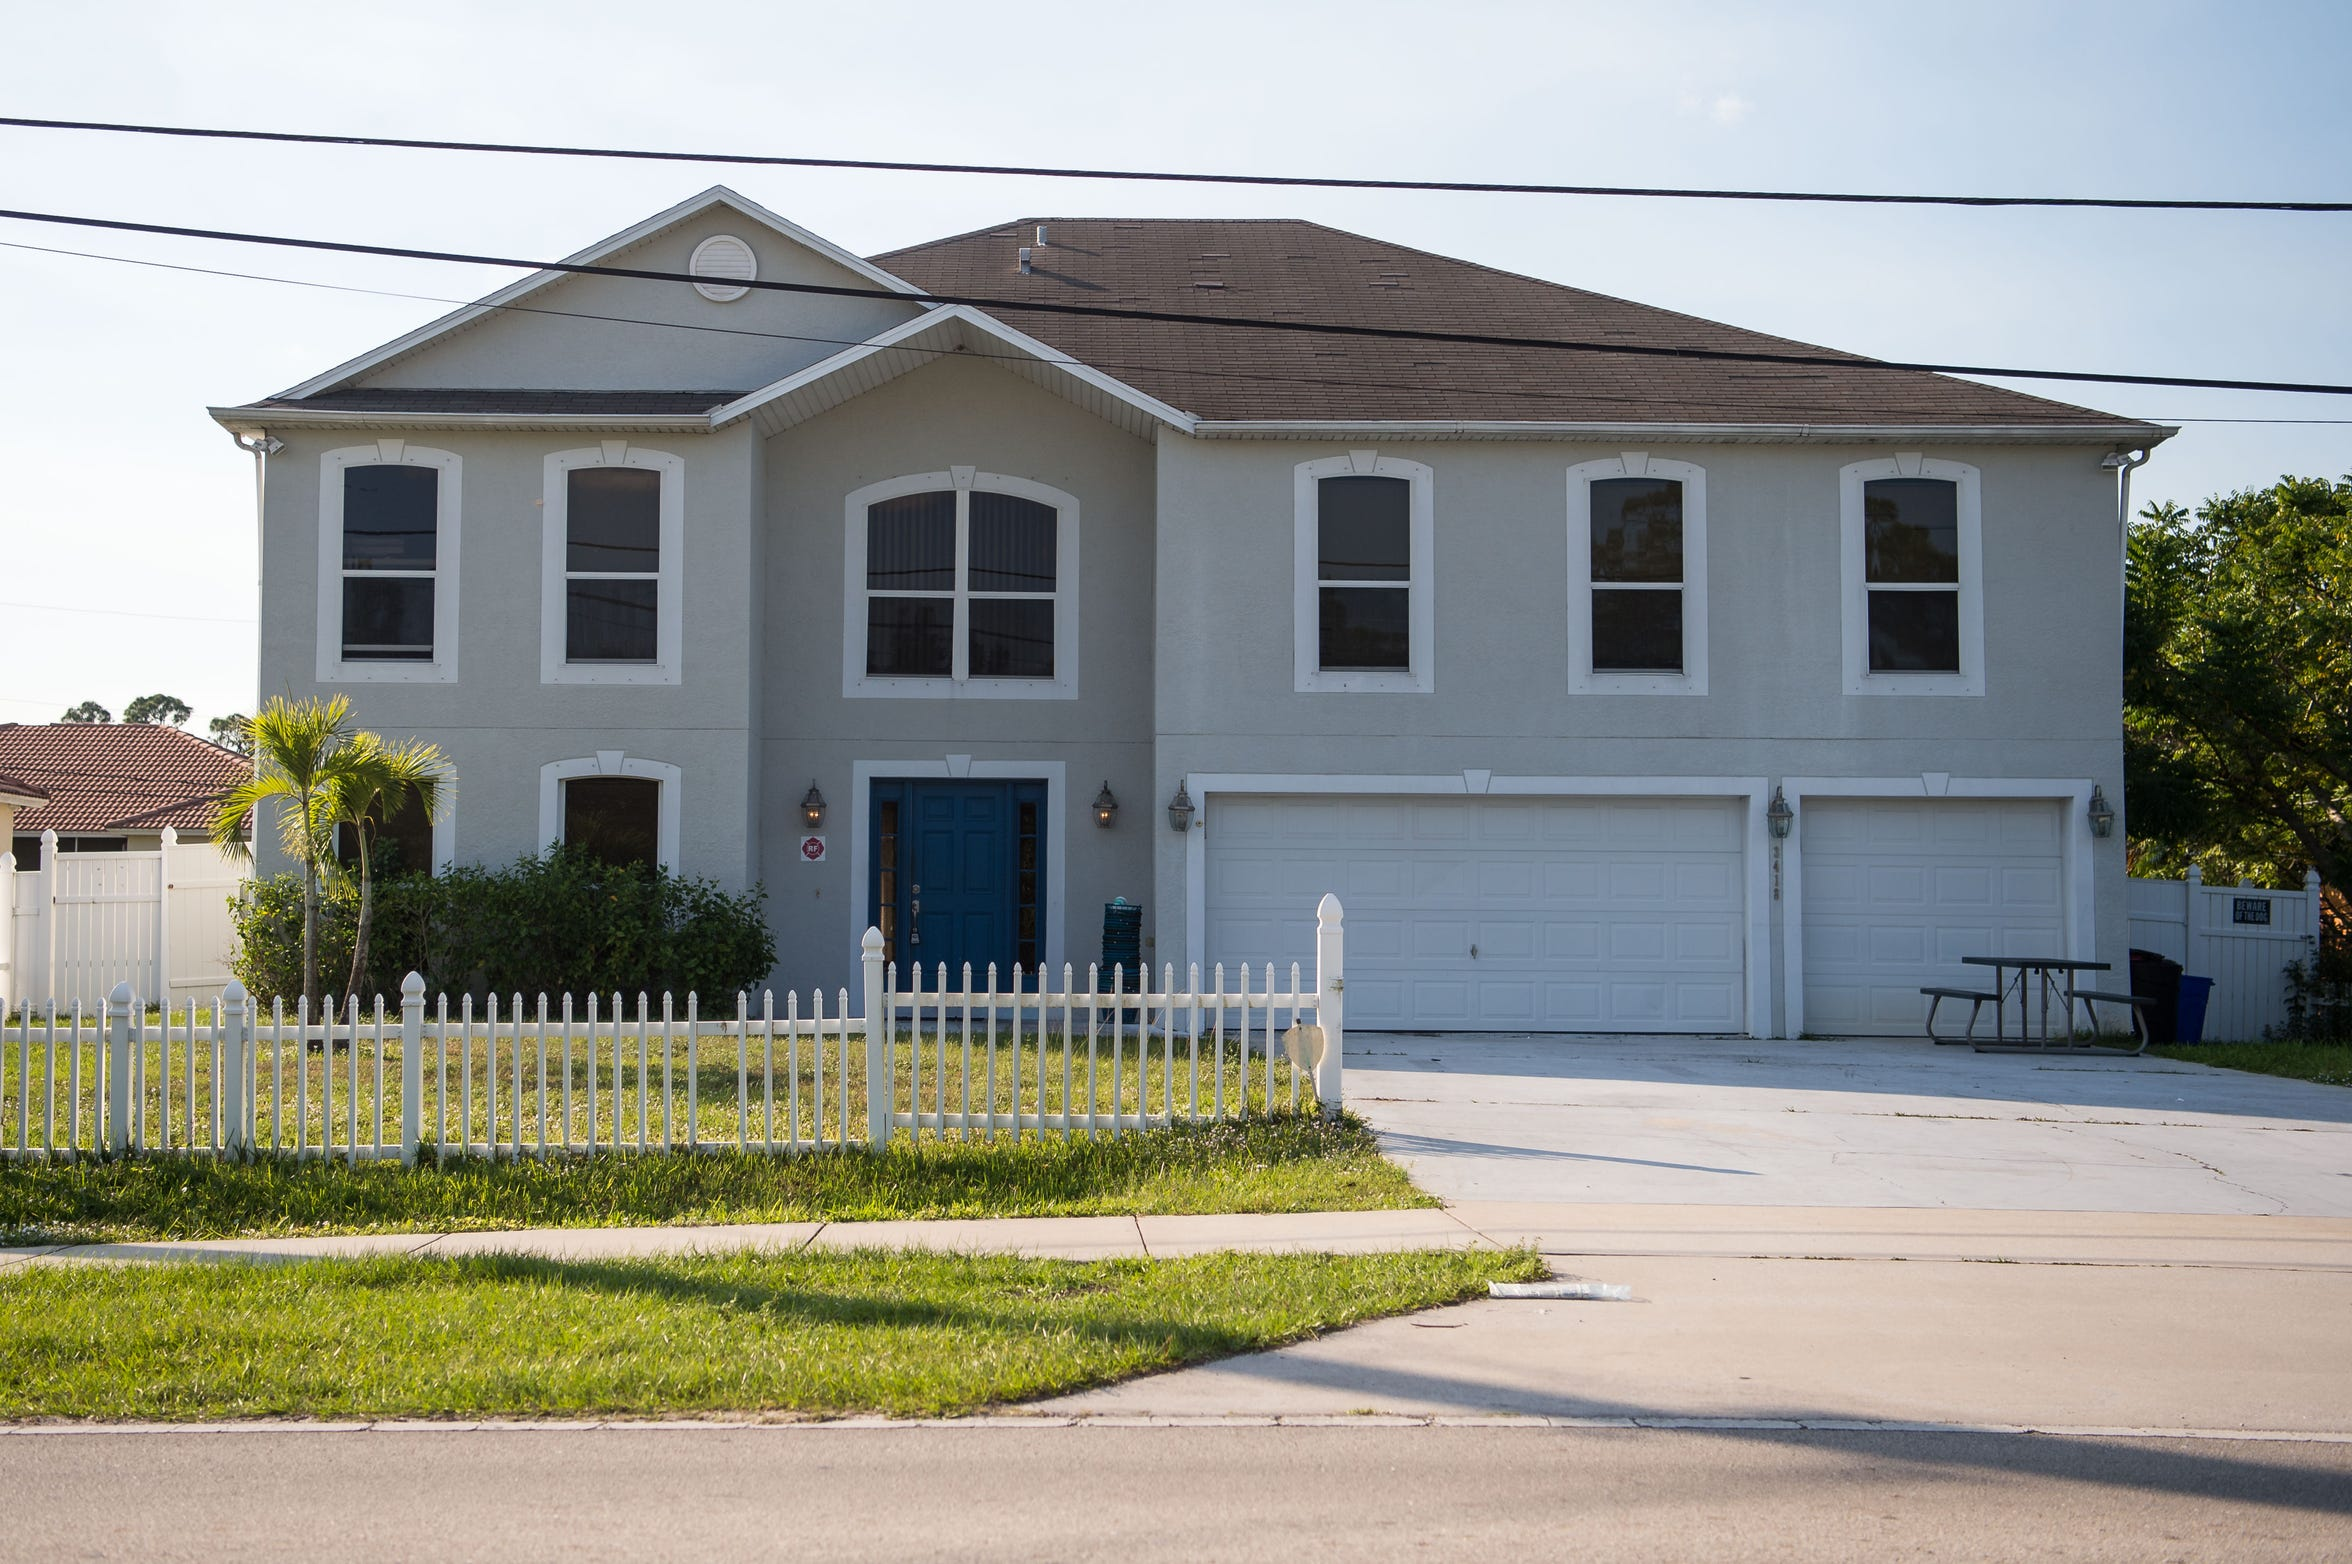 """A six-bedroom residence on Southwest Savona Boulevard — reported to house 40 players and a """"house mom"""" for Nation Christian Academy — is seen Monday, Dec. 3, 2018, in Port St. Lucie. The post-graduate football team had a winning first season, but various concerns have come to light after a profanity-laced tirade from school CEO Mike Woodbury went viral."""